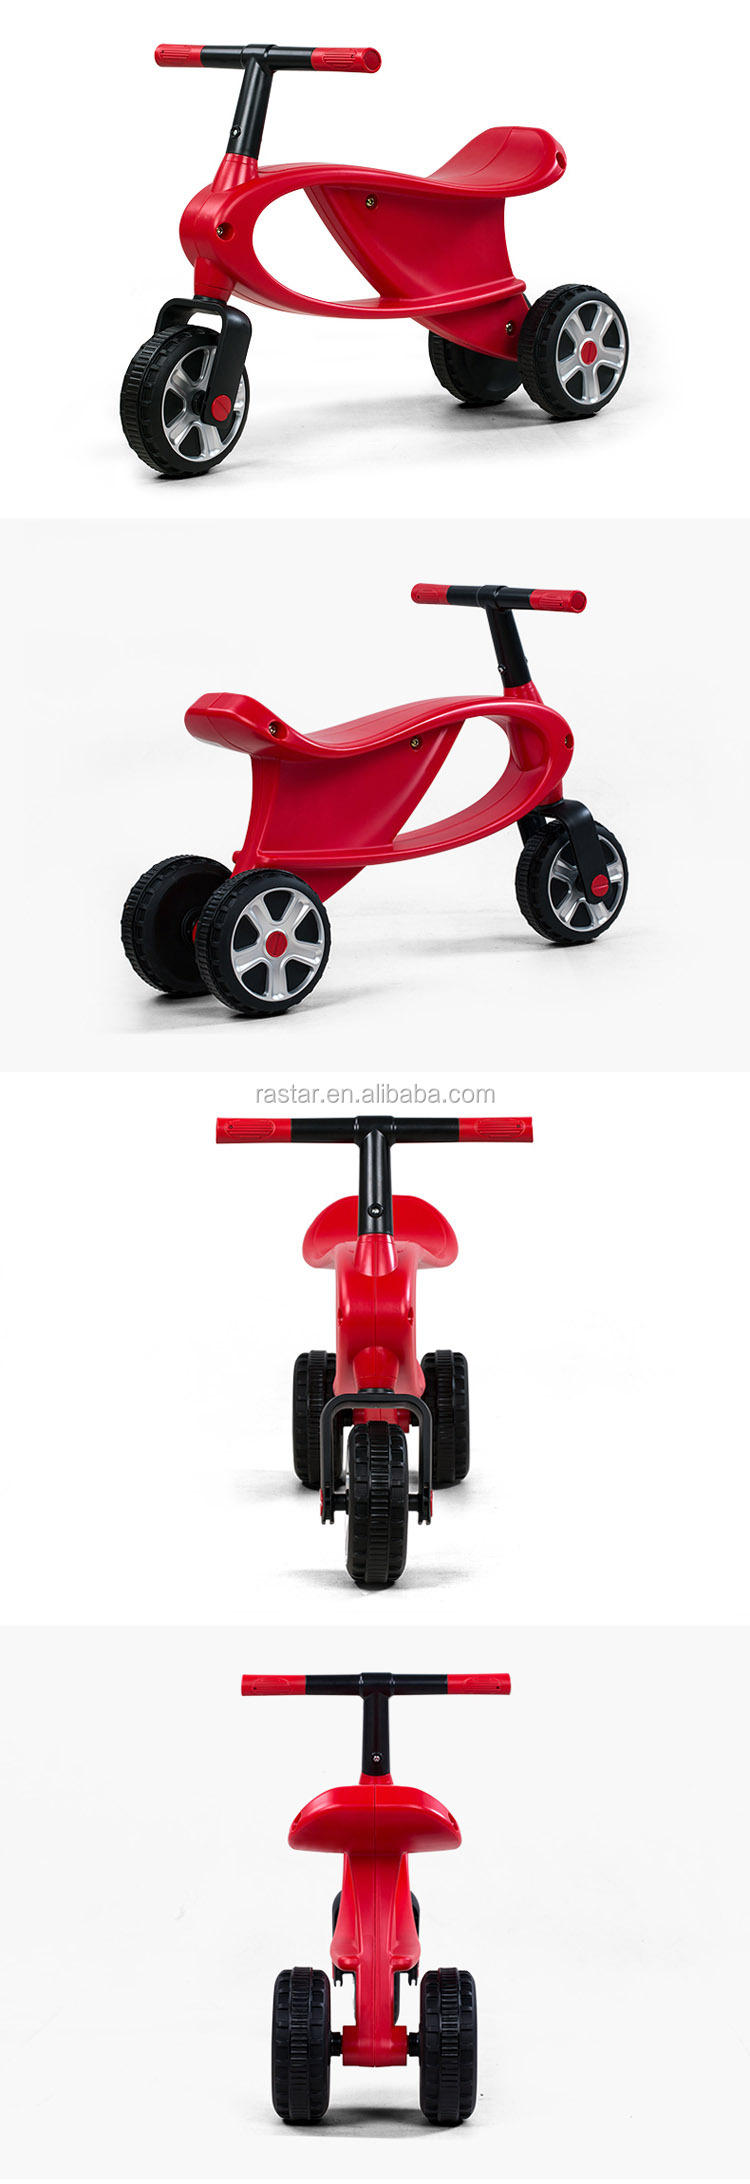 Rastar kids toys baby toy 3 wheel car bike